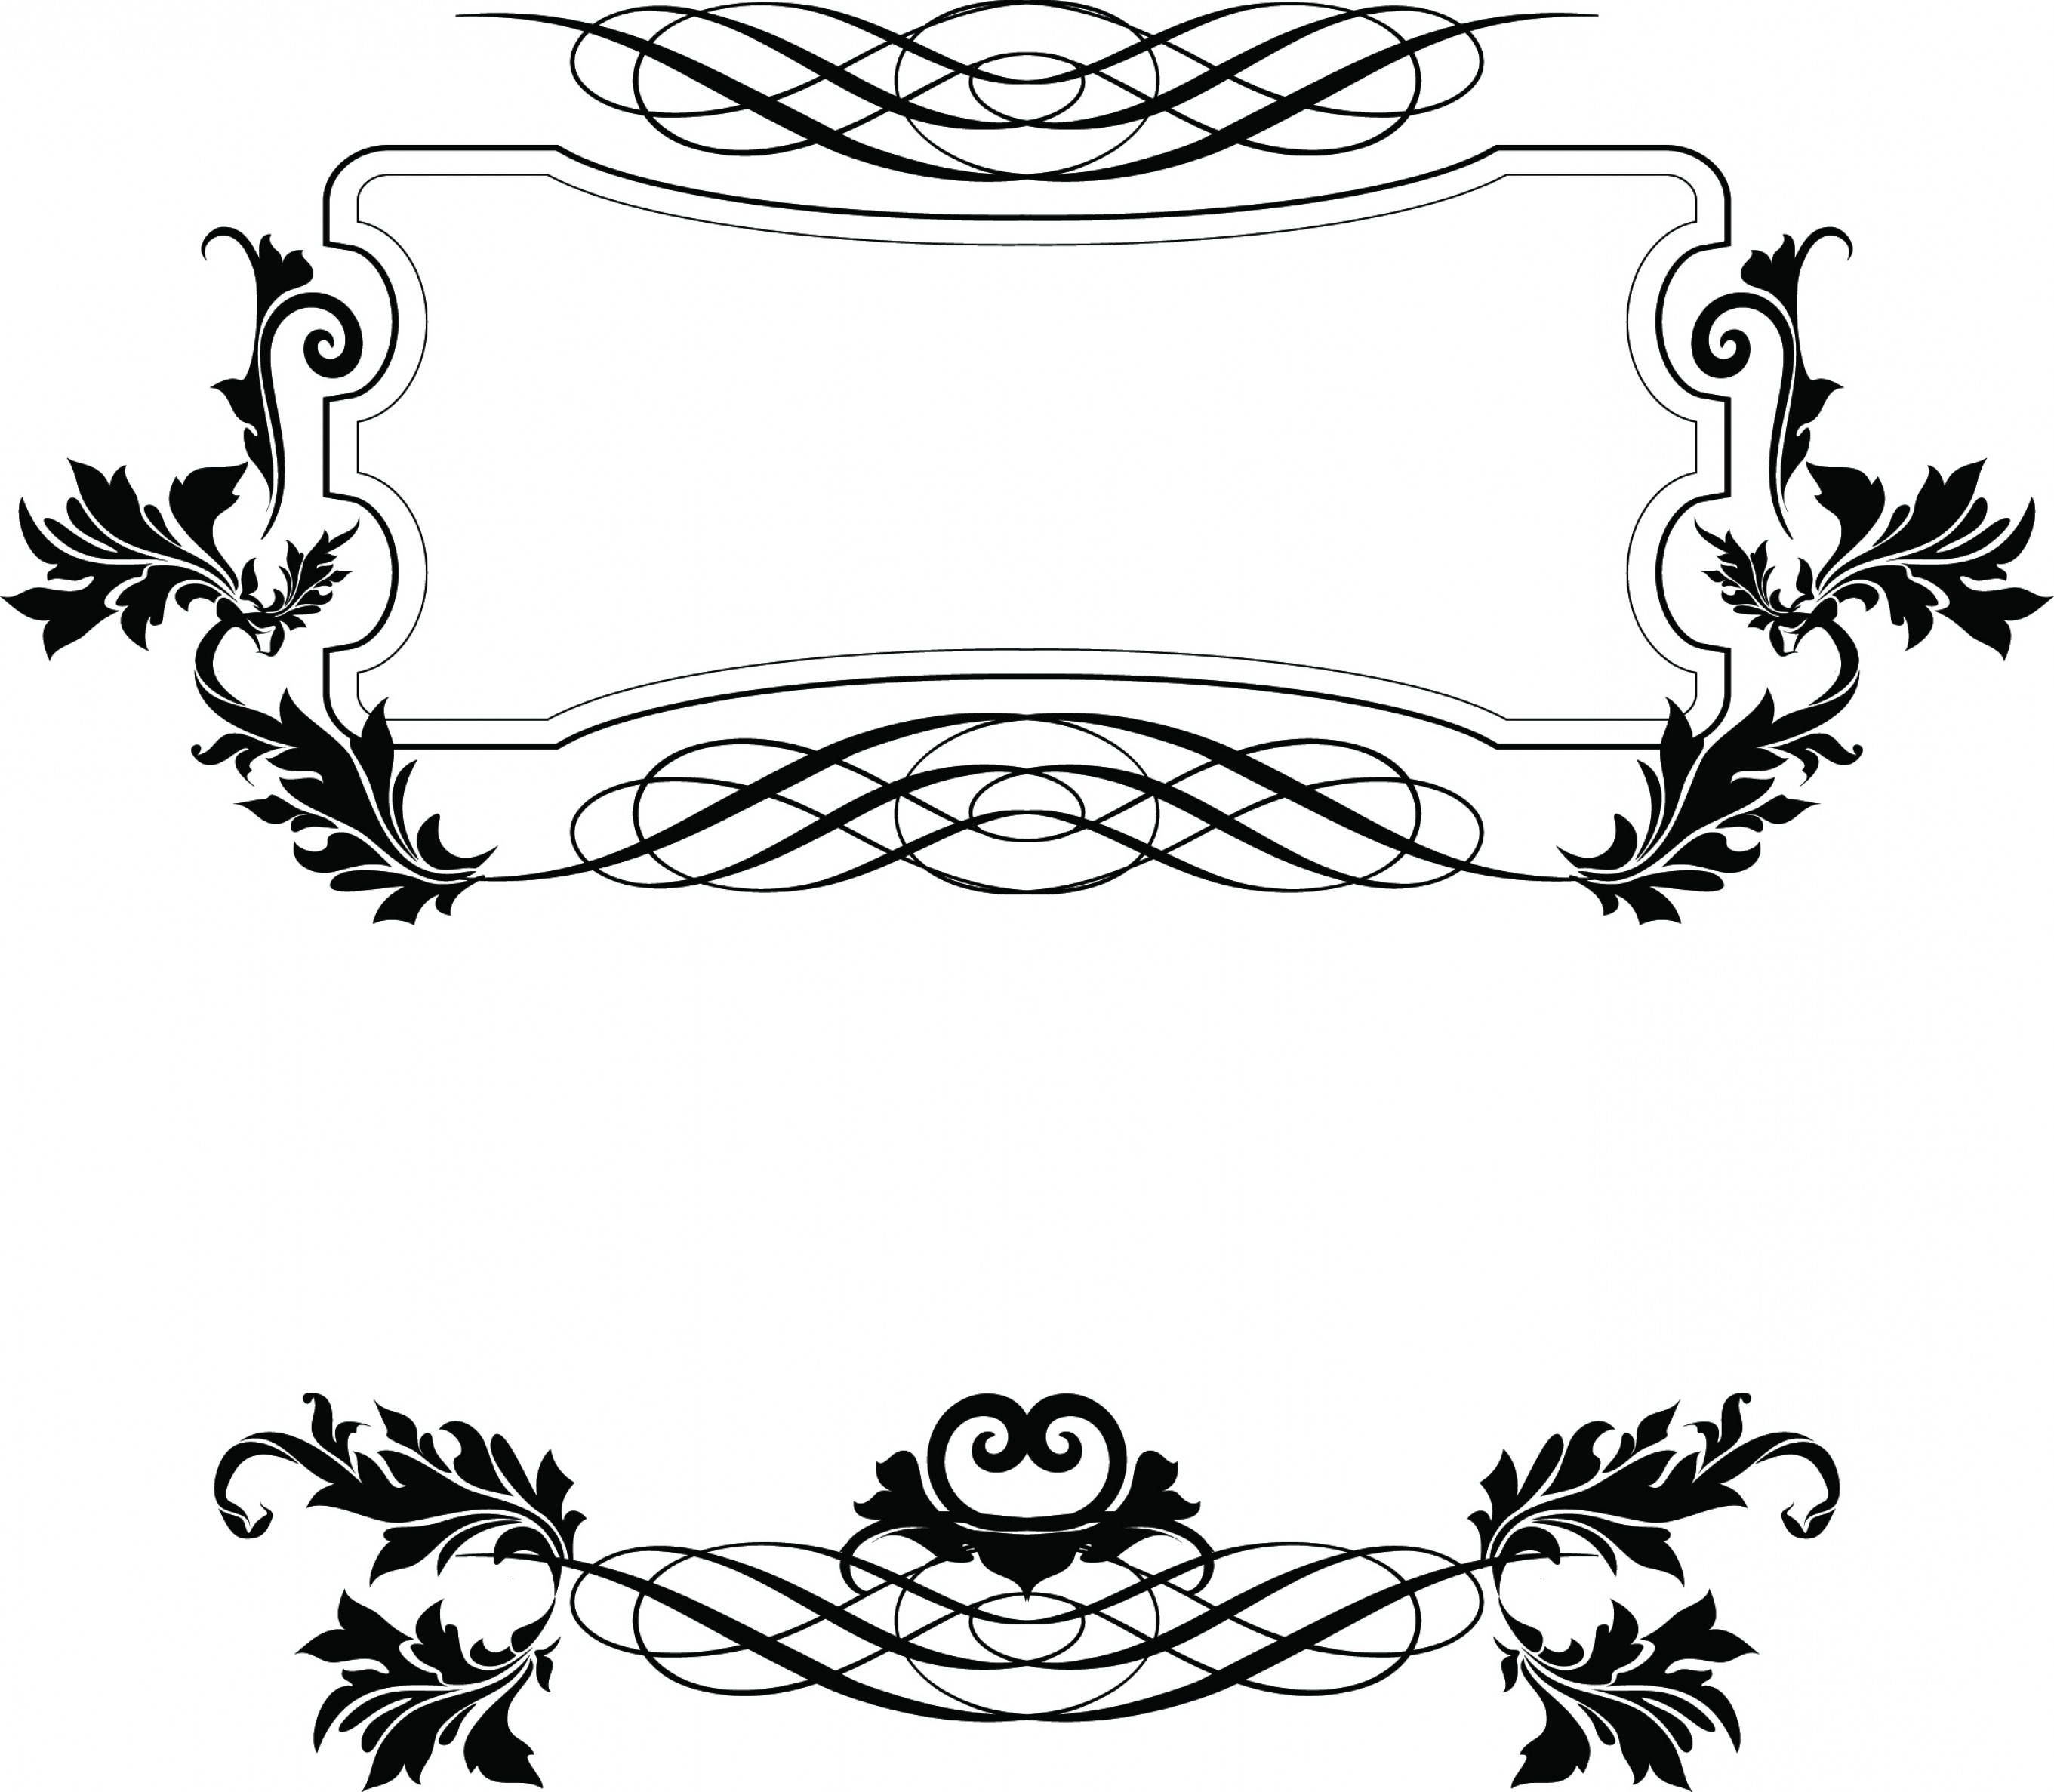 2721x2374 Decorative Border Designs For Projects Vector Vintage Decorative